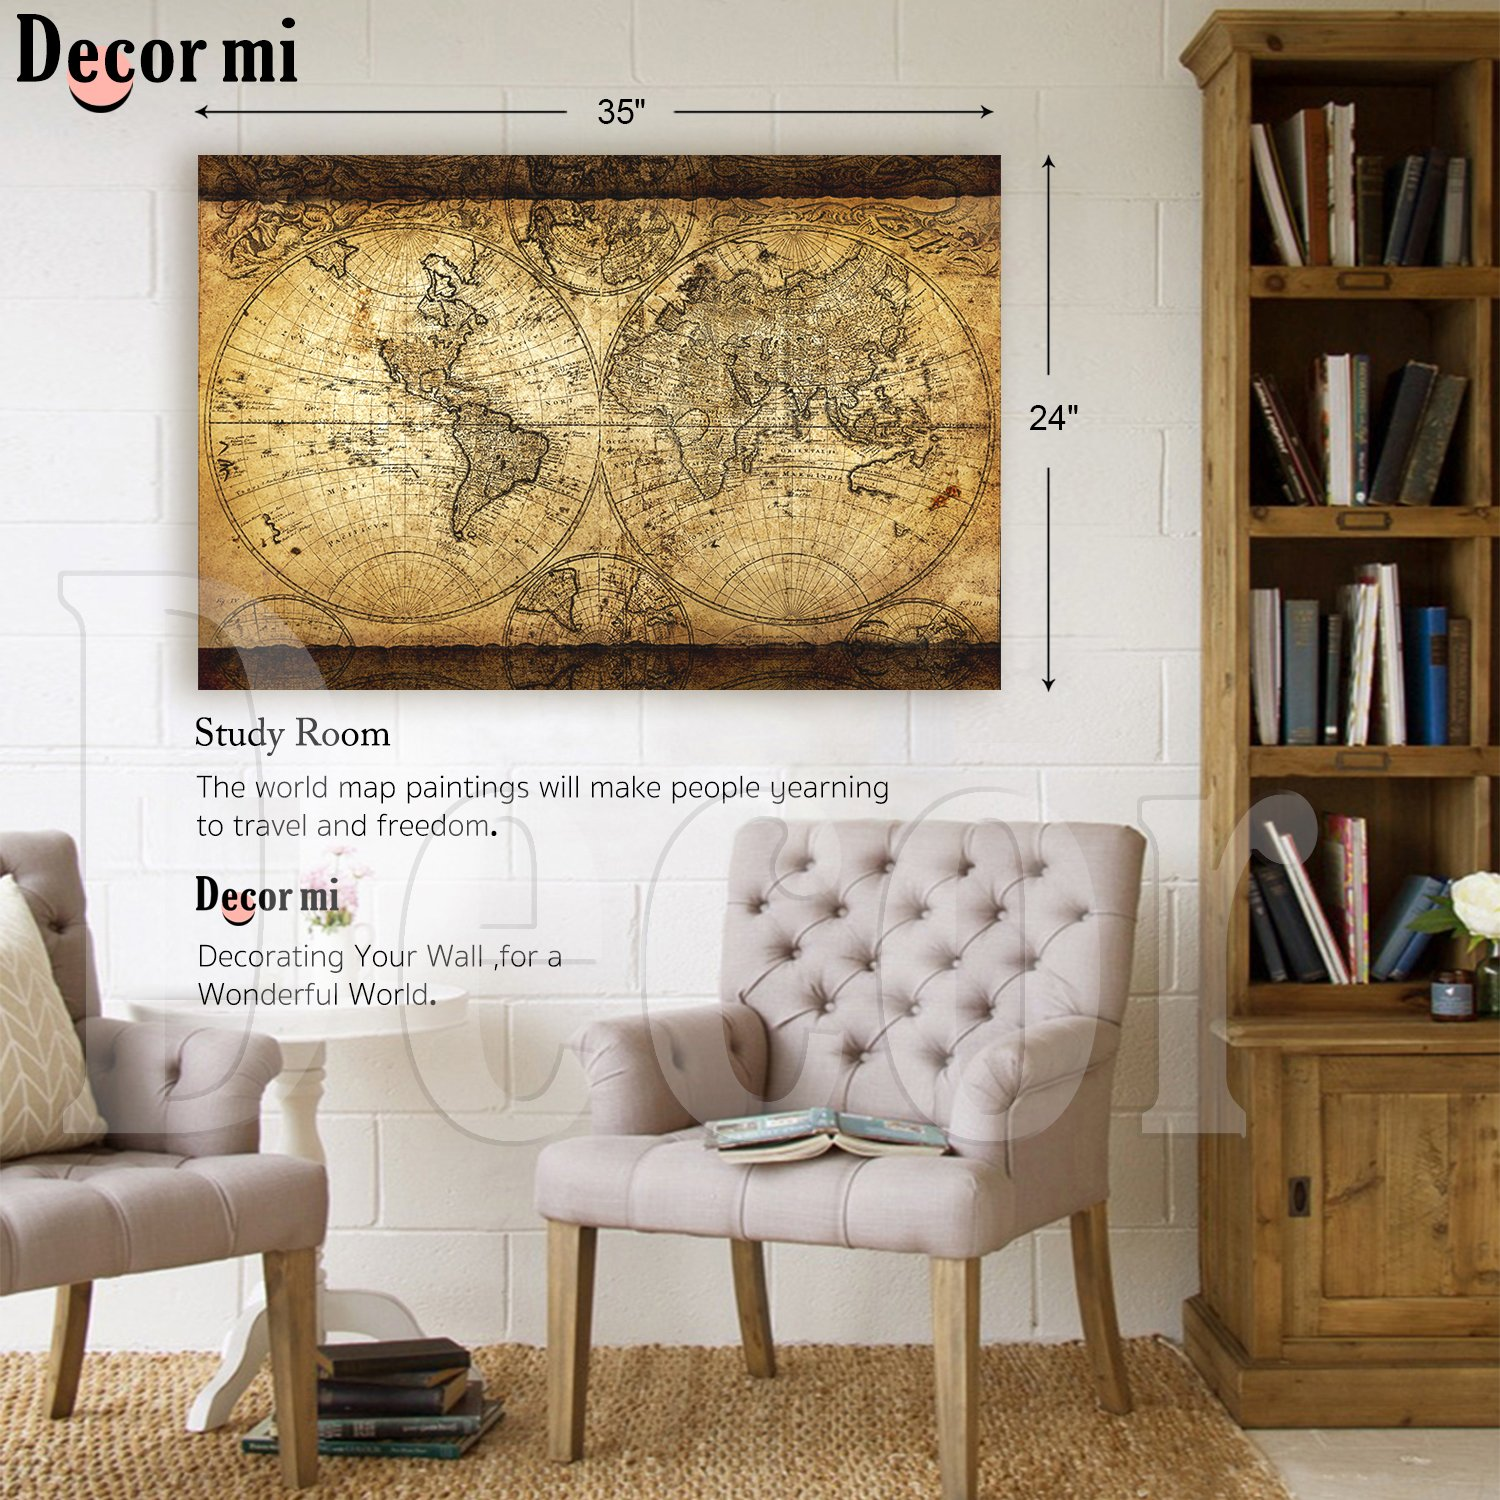 Decor mi vintage world map canvas wall art retro map of the world decor mi vintage world map canvas wall art retro map of the world canvas prints framed and stretched for living room ready to hang 24x35 gumiabroncs Gallery